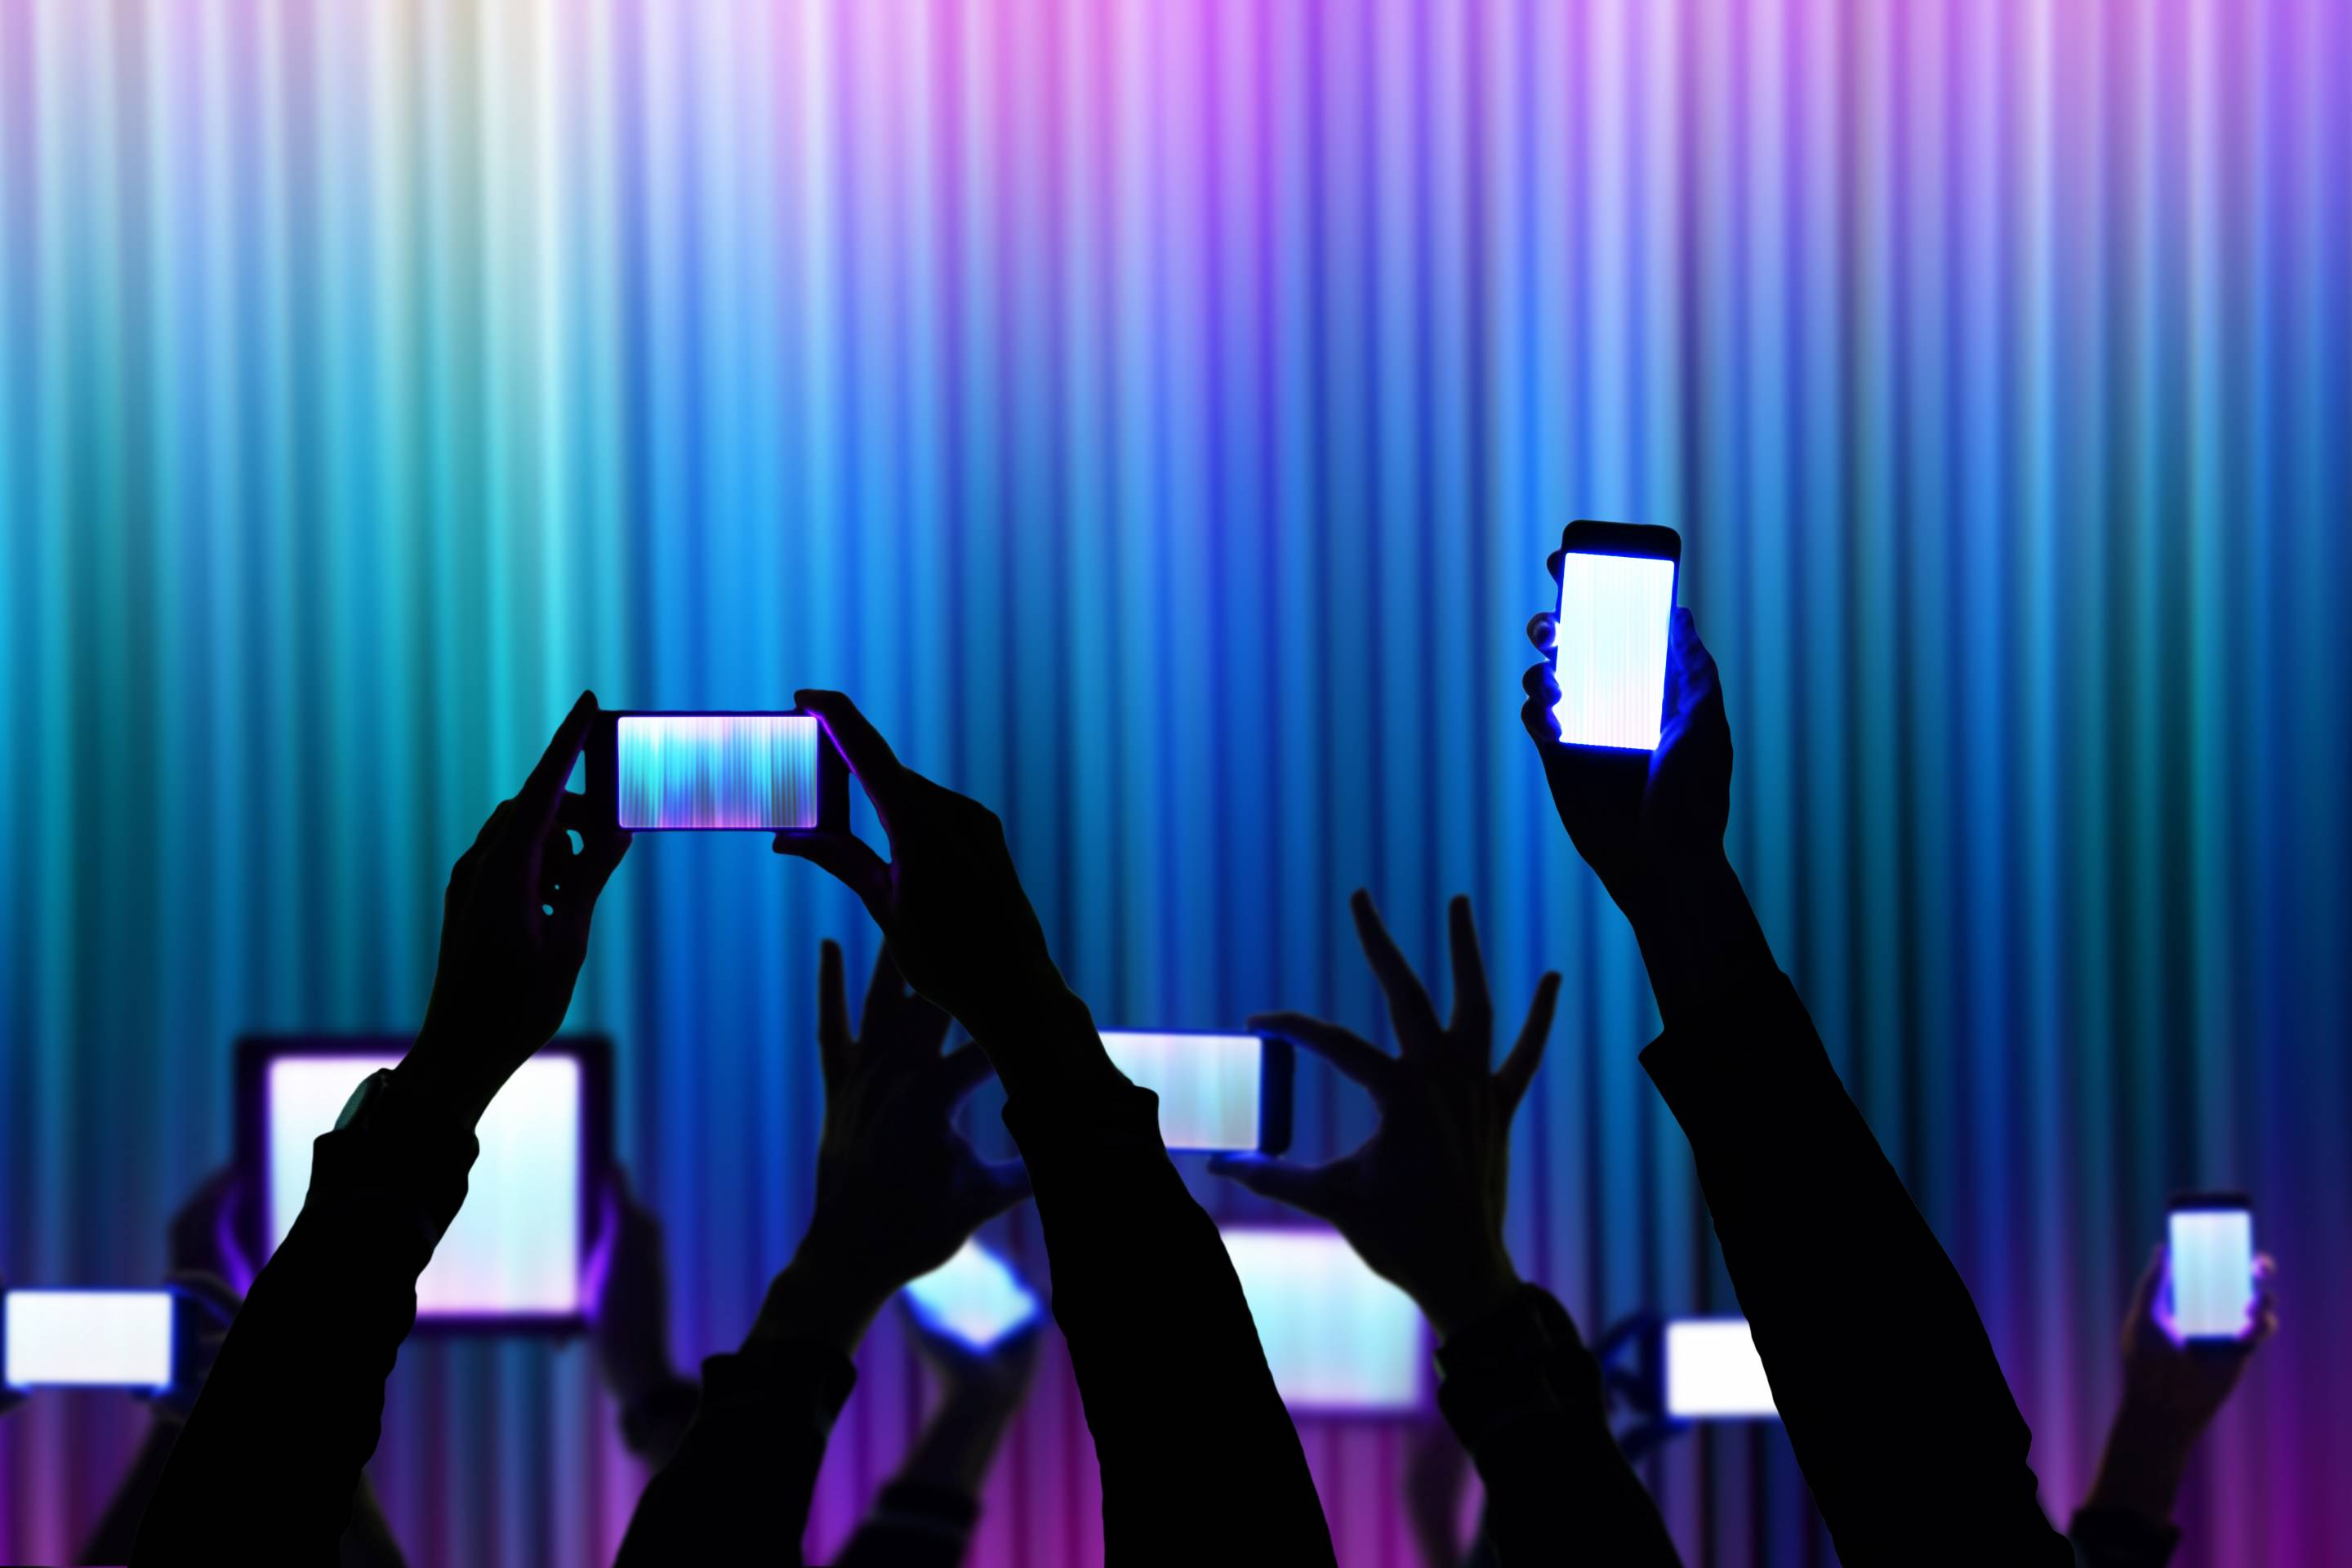 People raise his bright smartphone and tablet device during a night show celebration with dark silhouettes and colorful background.